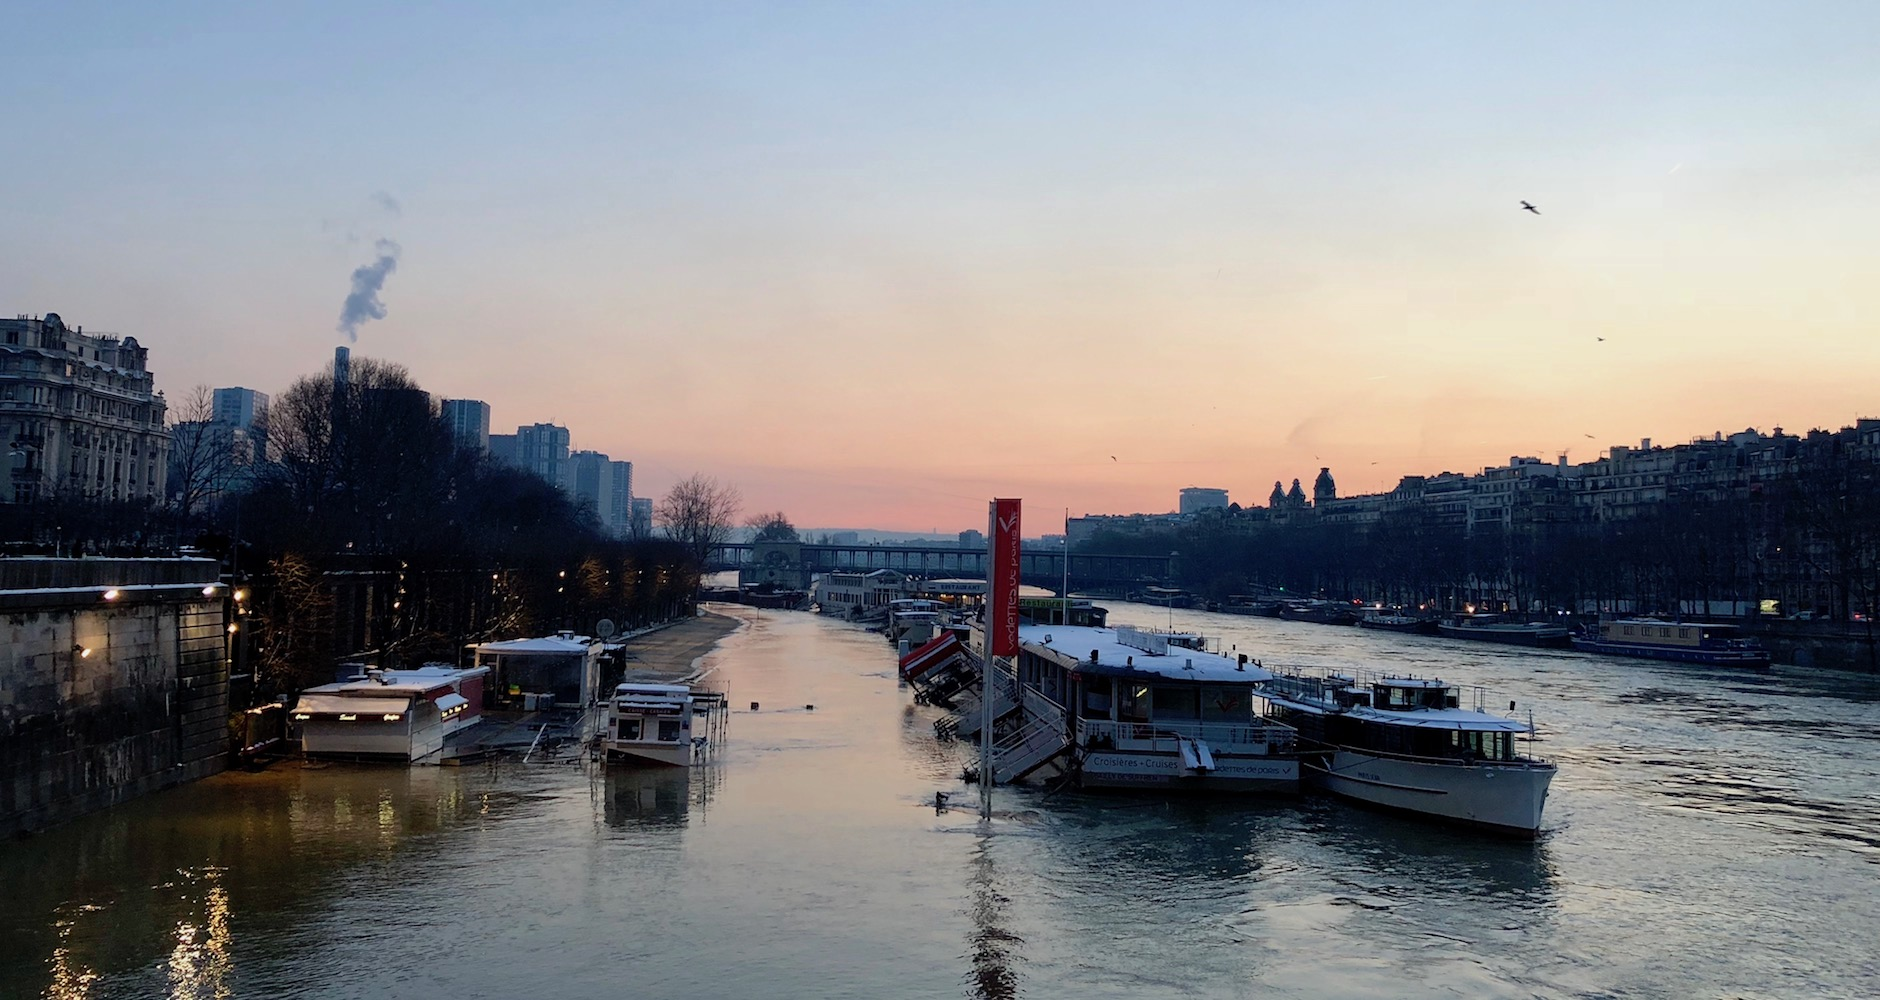 The river Seine at sunset